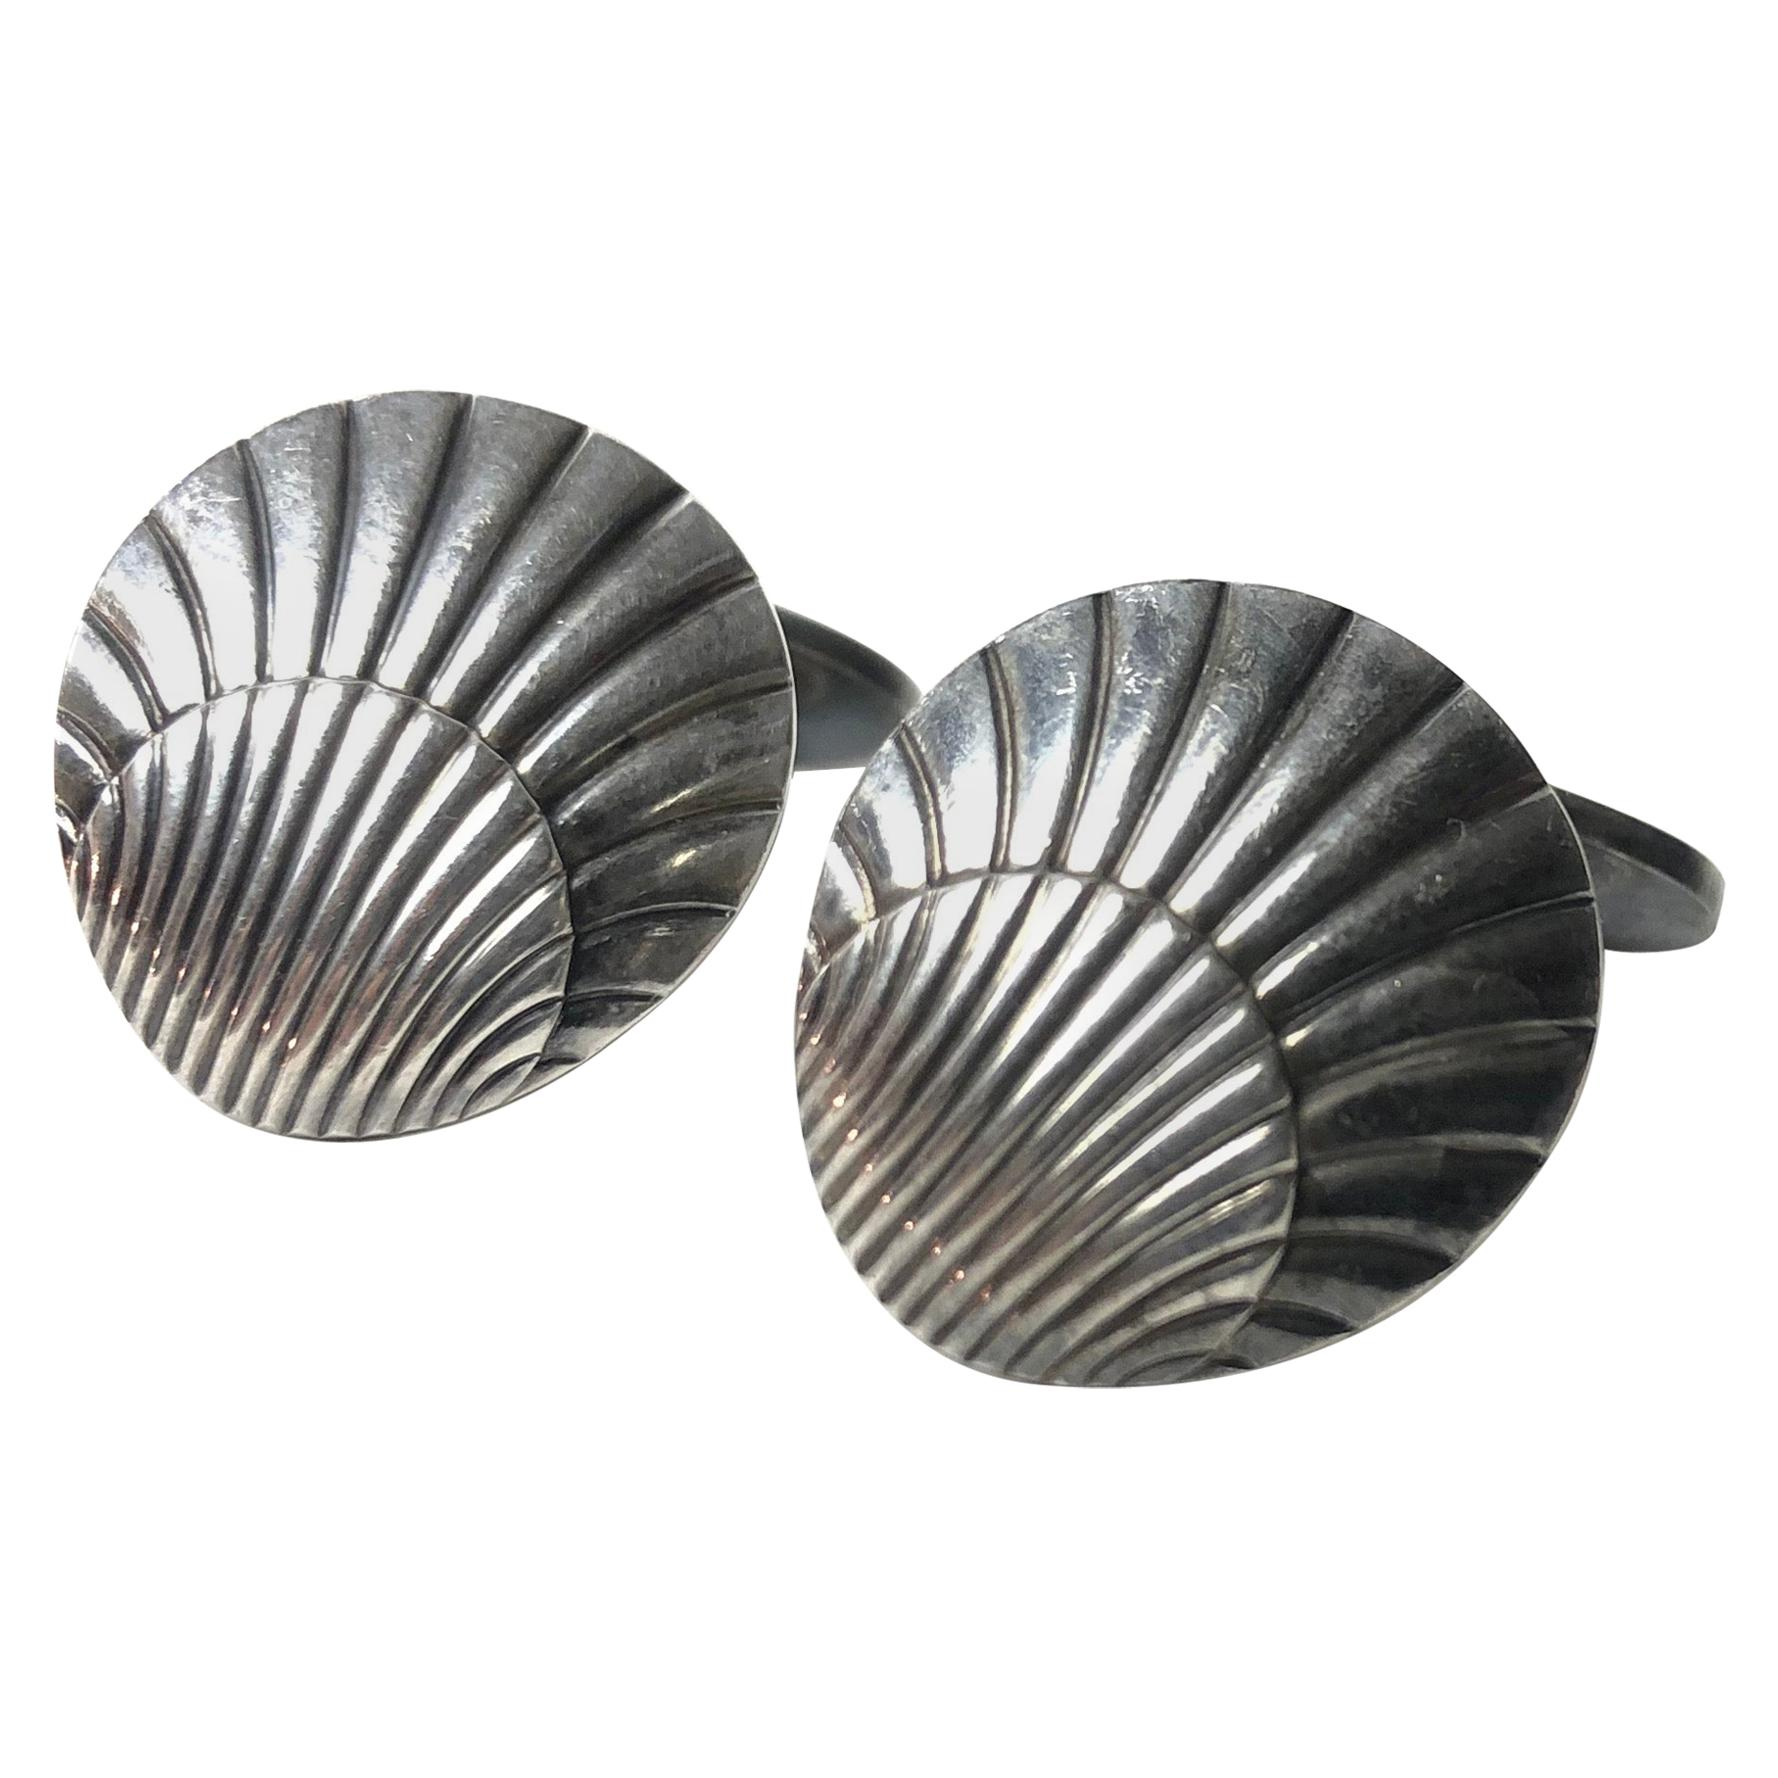 Pair of Sterling Shell Cufflinks by Georg Jensen